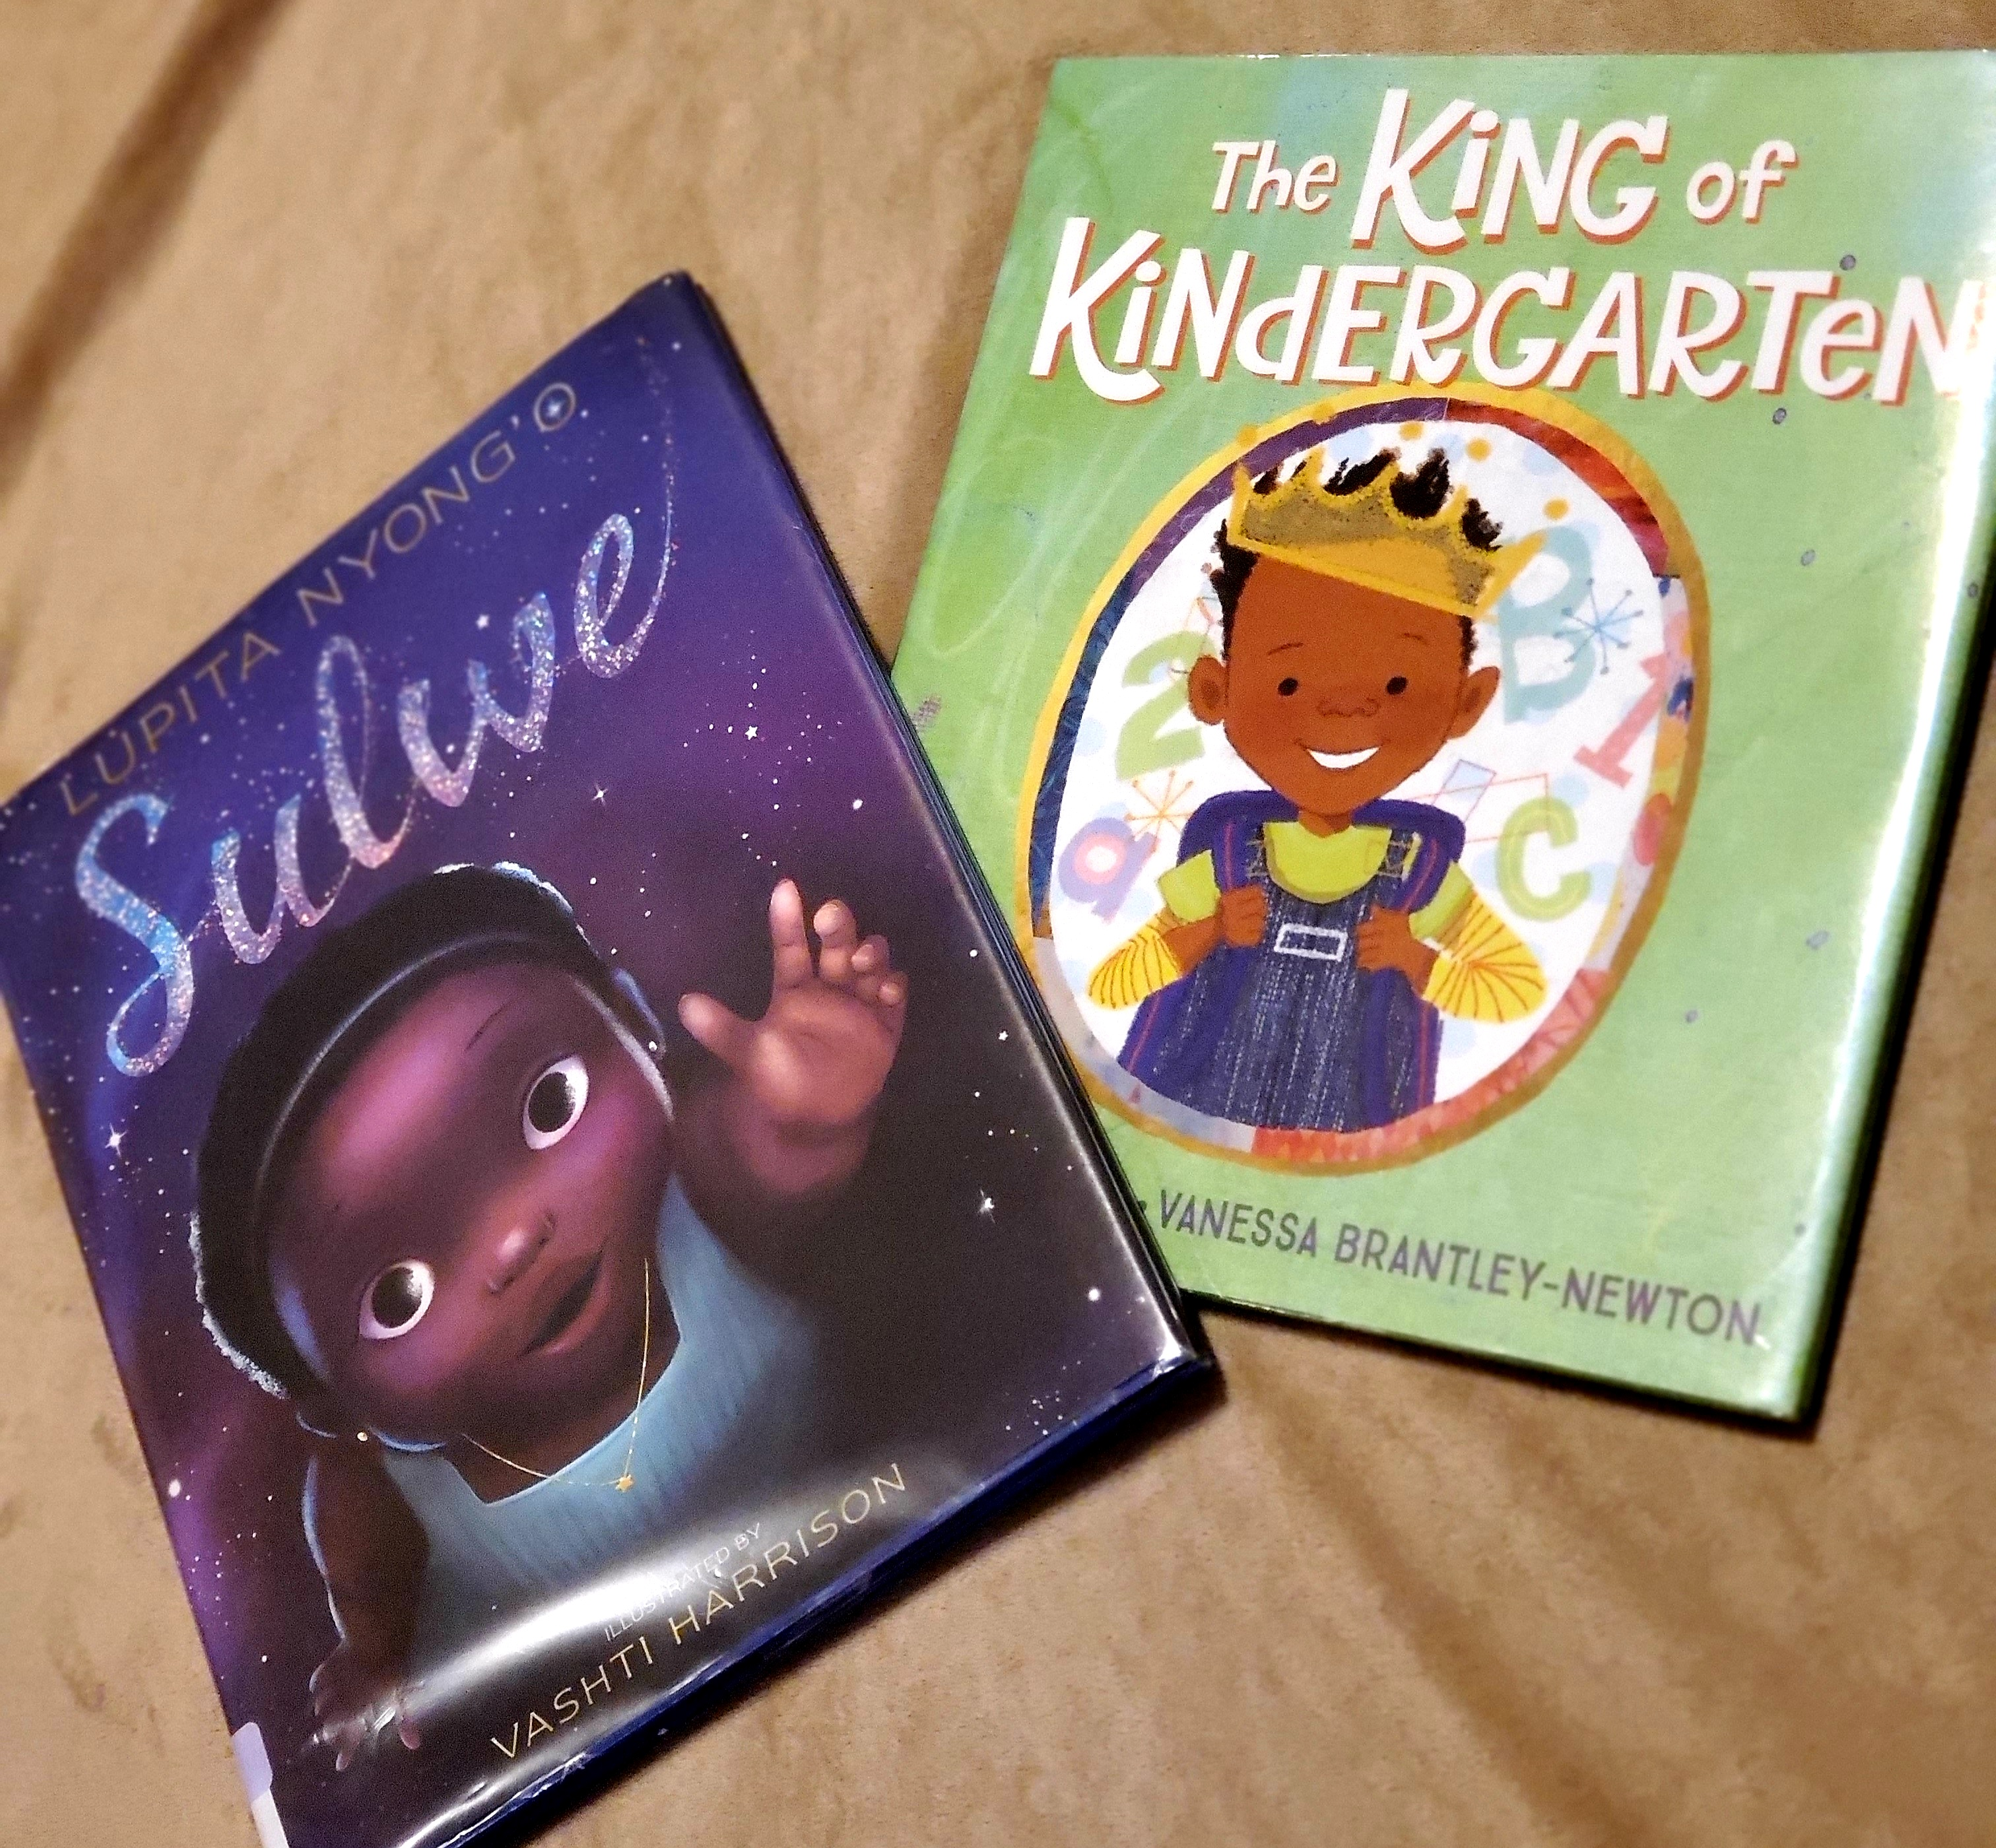 11 book titles empowering black children to see themselves